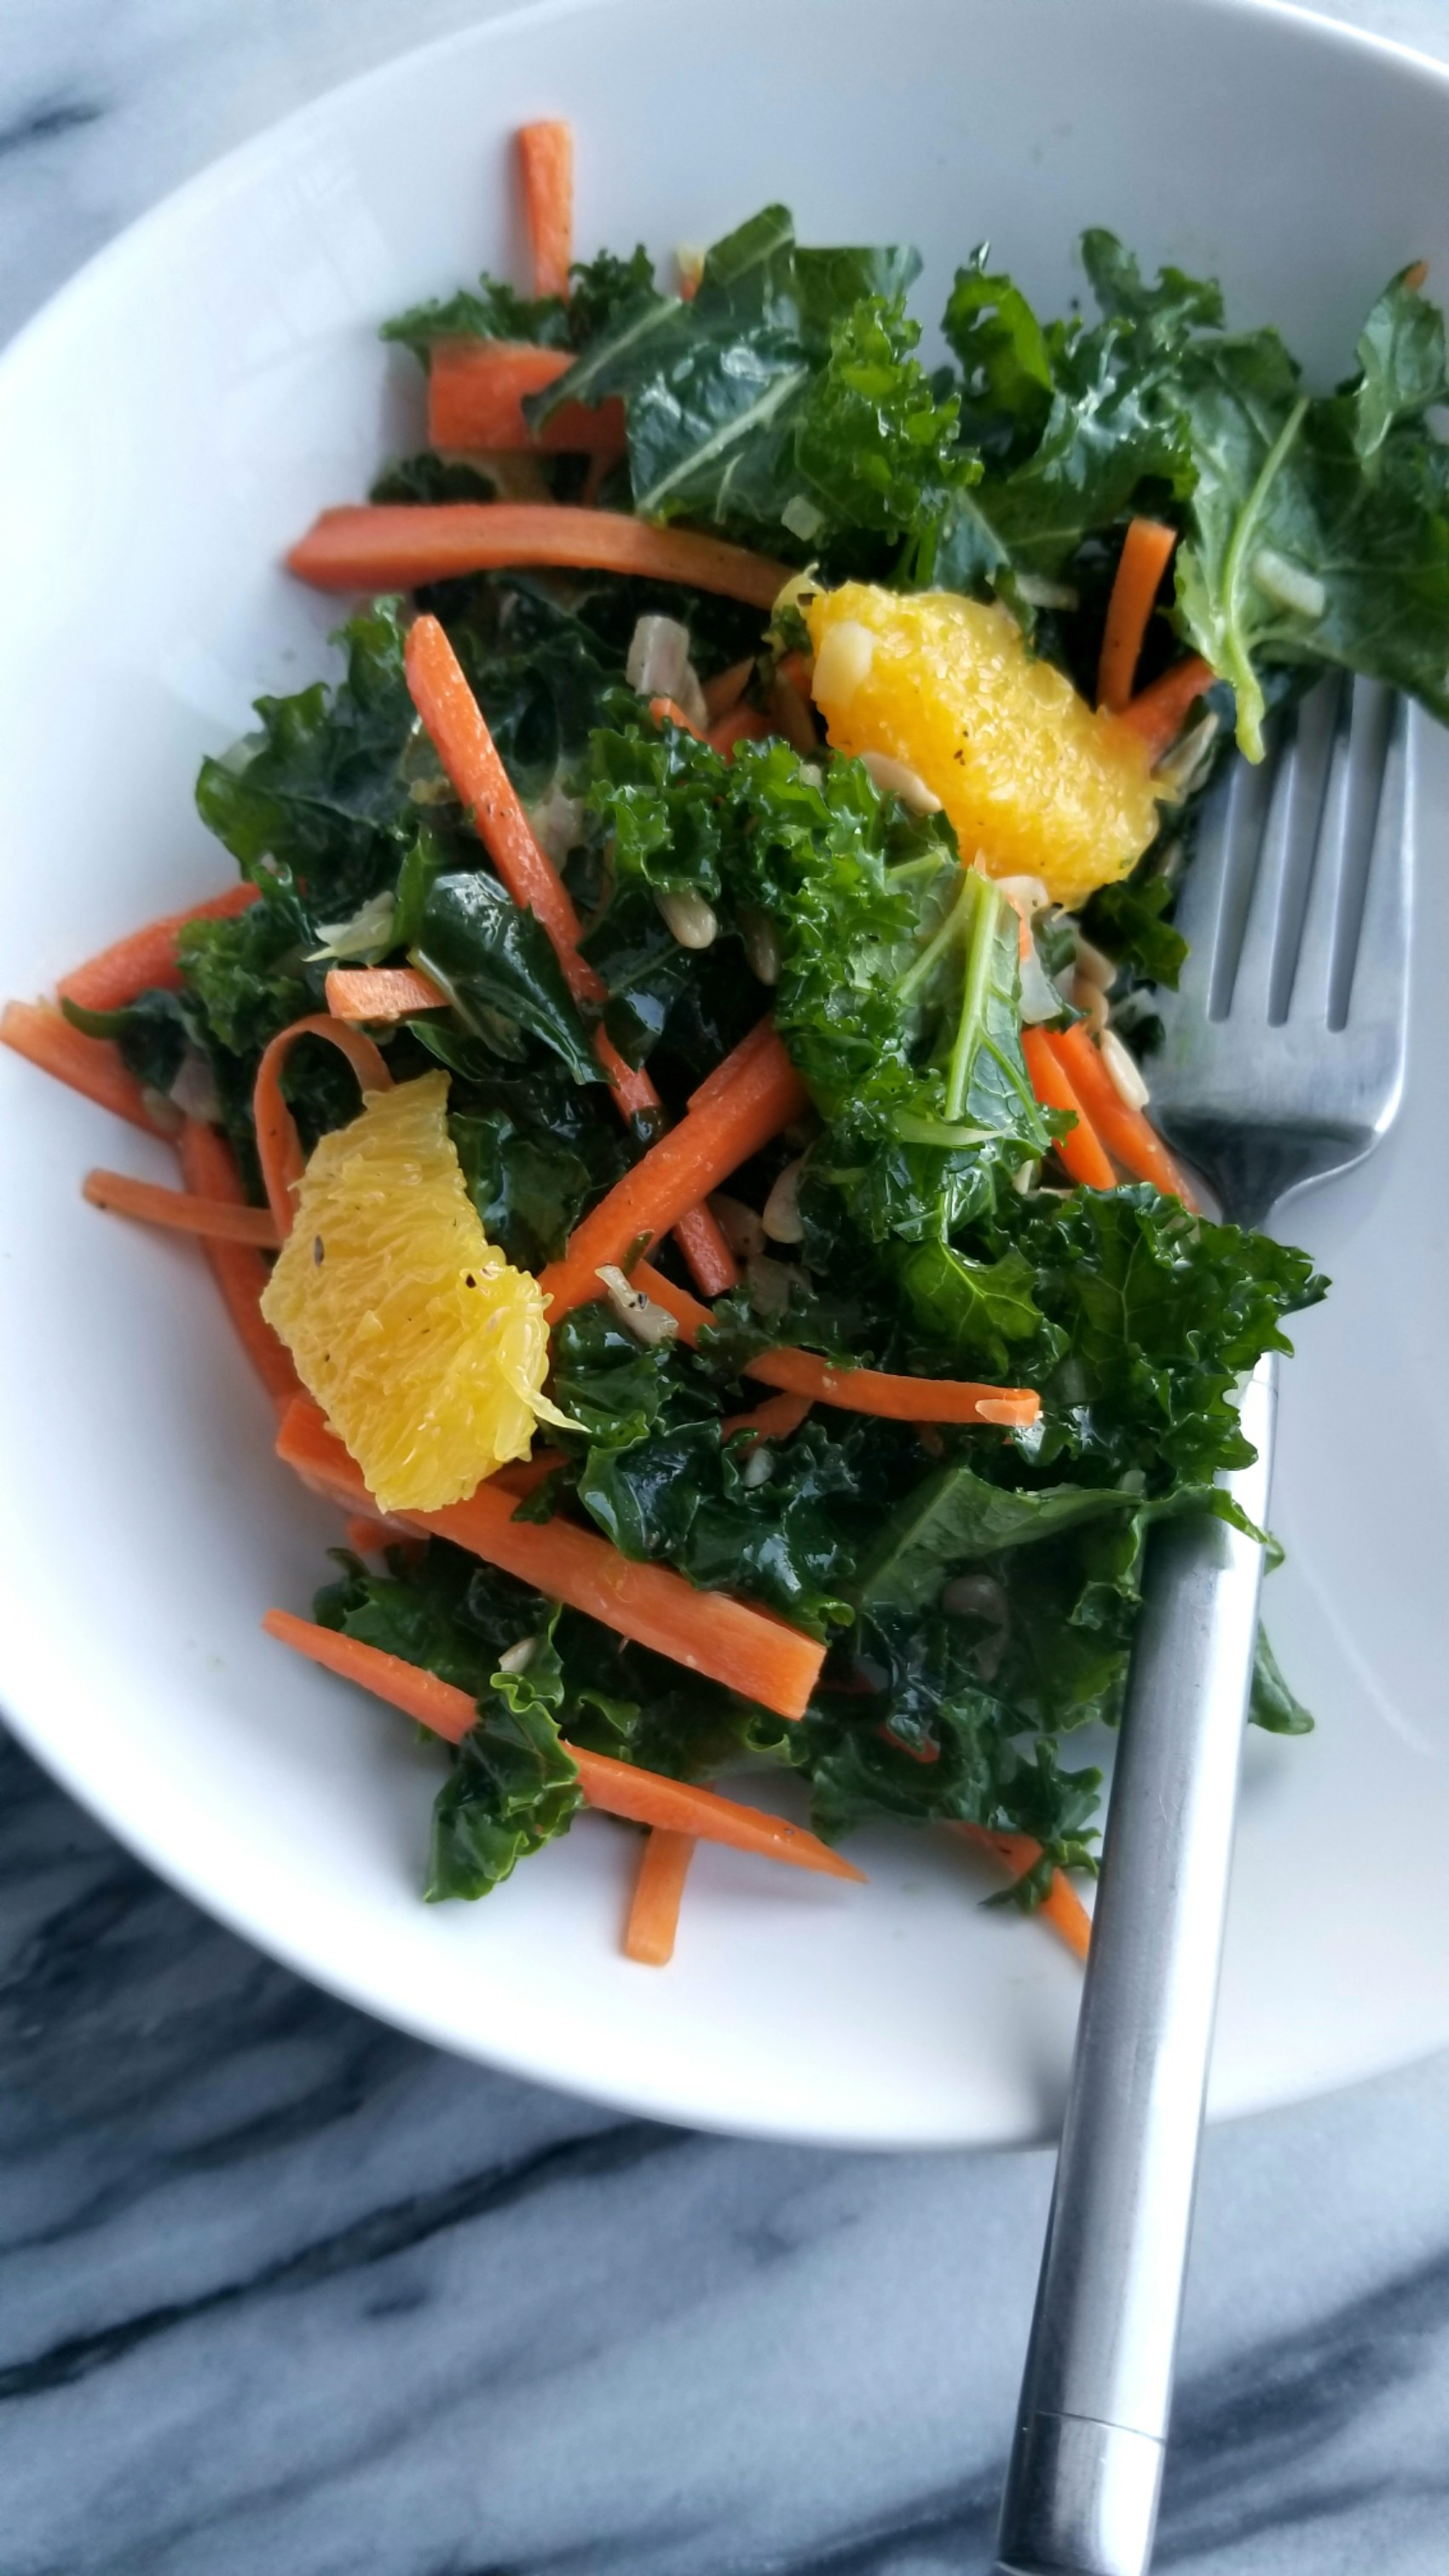 Kale Salad with Oranges, Carrots and Sunflower Seeds